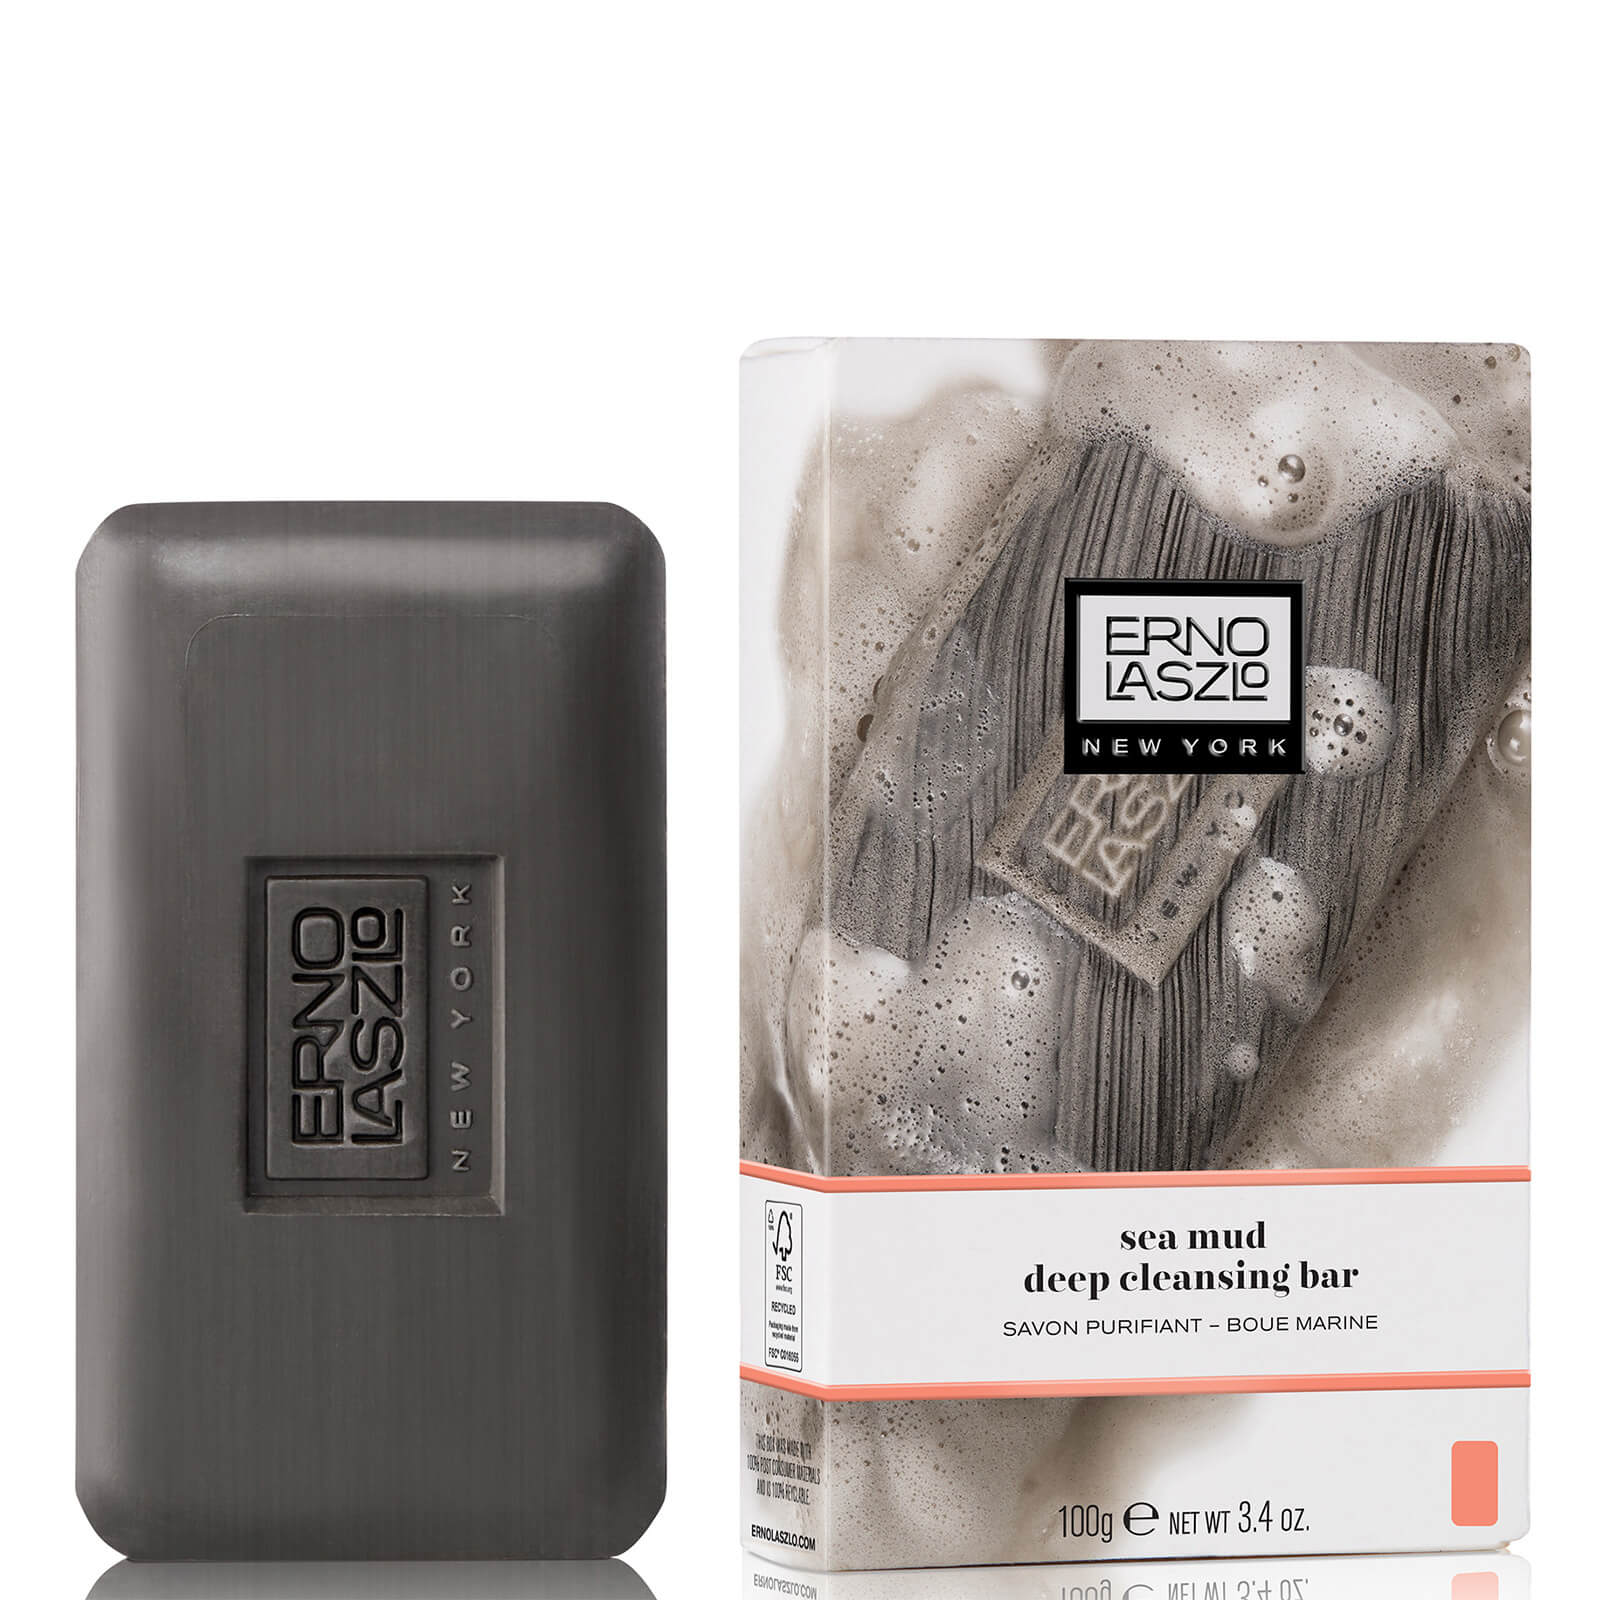 Watch a story about ERNO LASZLO SEA MUD DEEP CLEANSING BAR (100G)